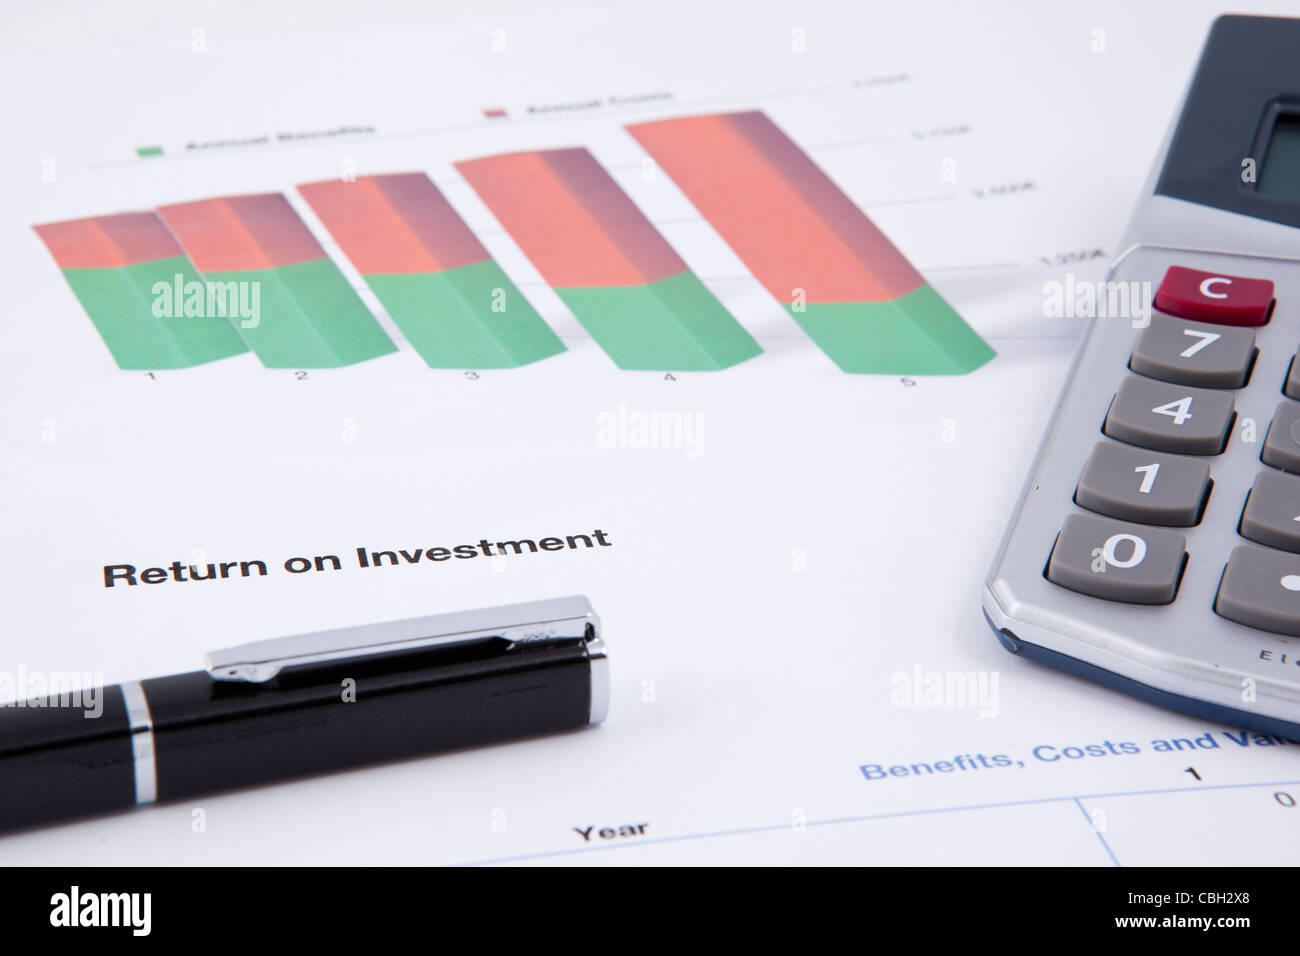 a balance sheet showing negative business figures - Stock Image